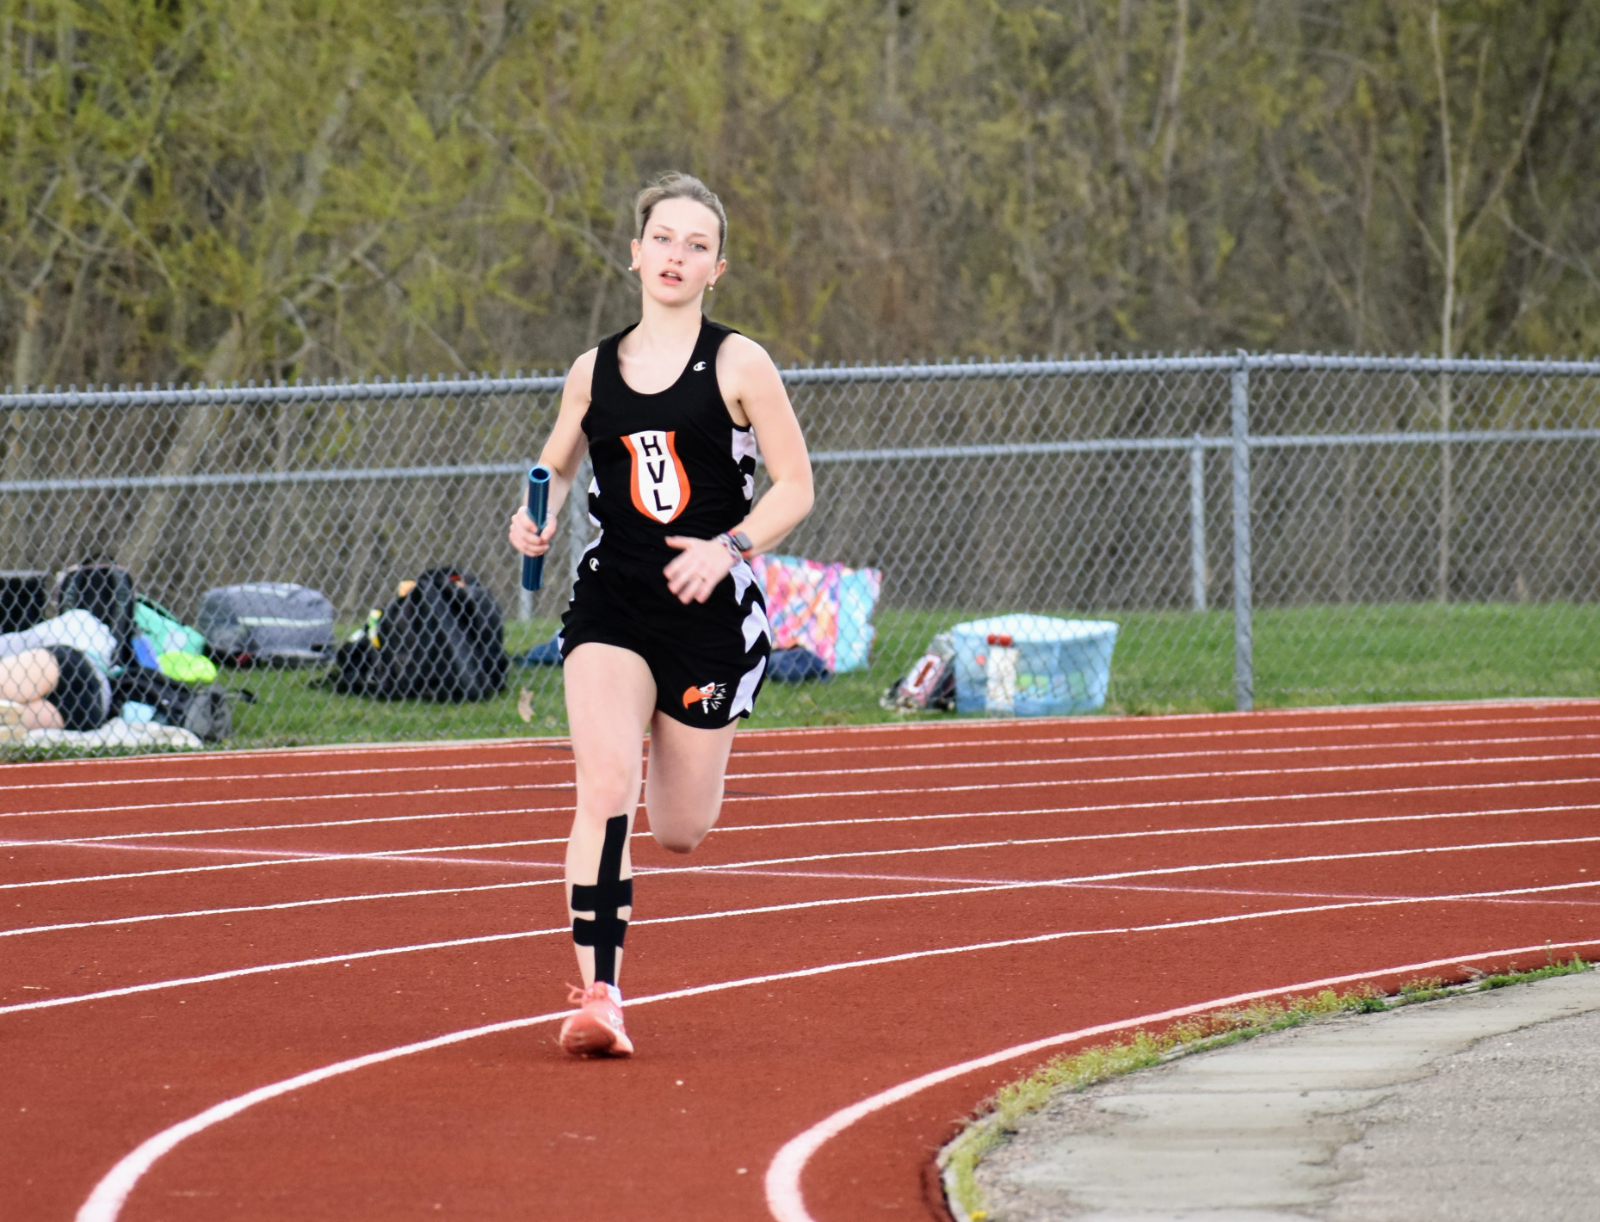 HVL Track Team Has Great Day at Whitmore Lake Invitational